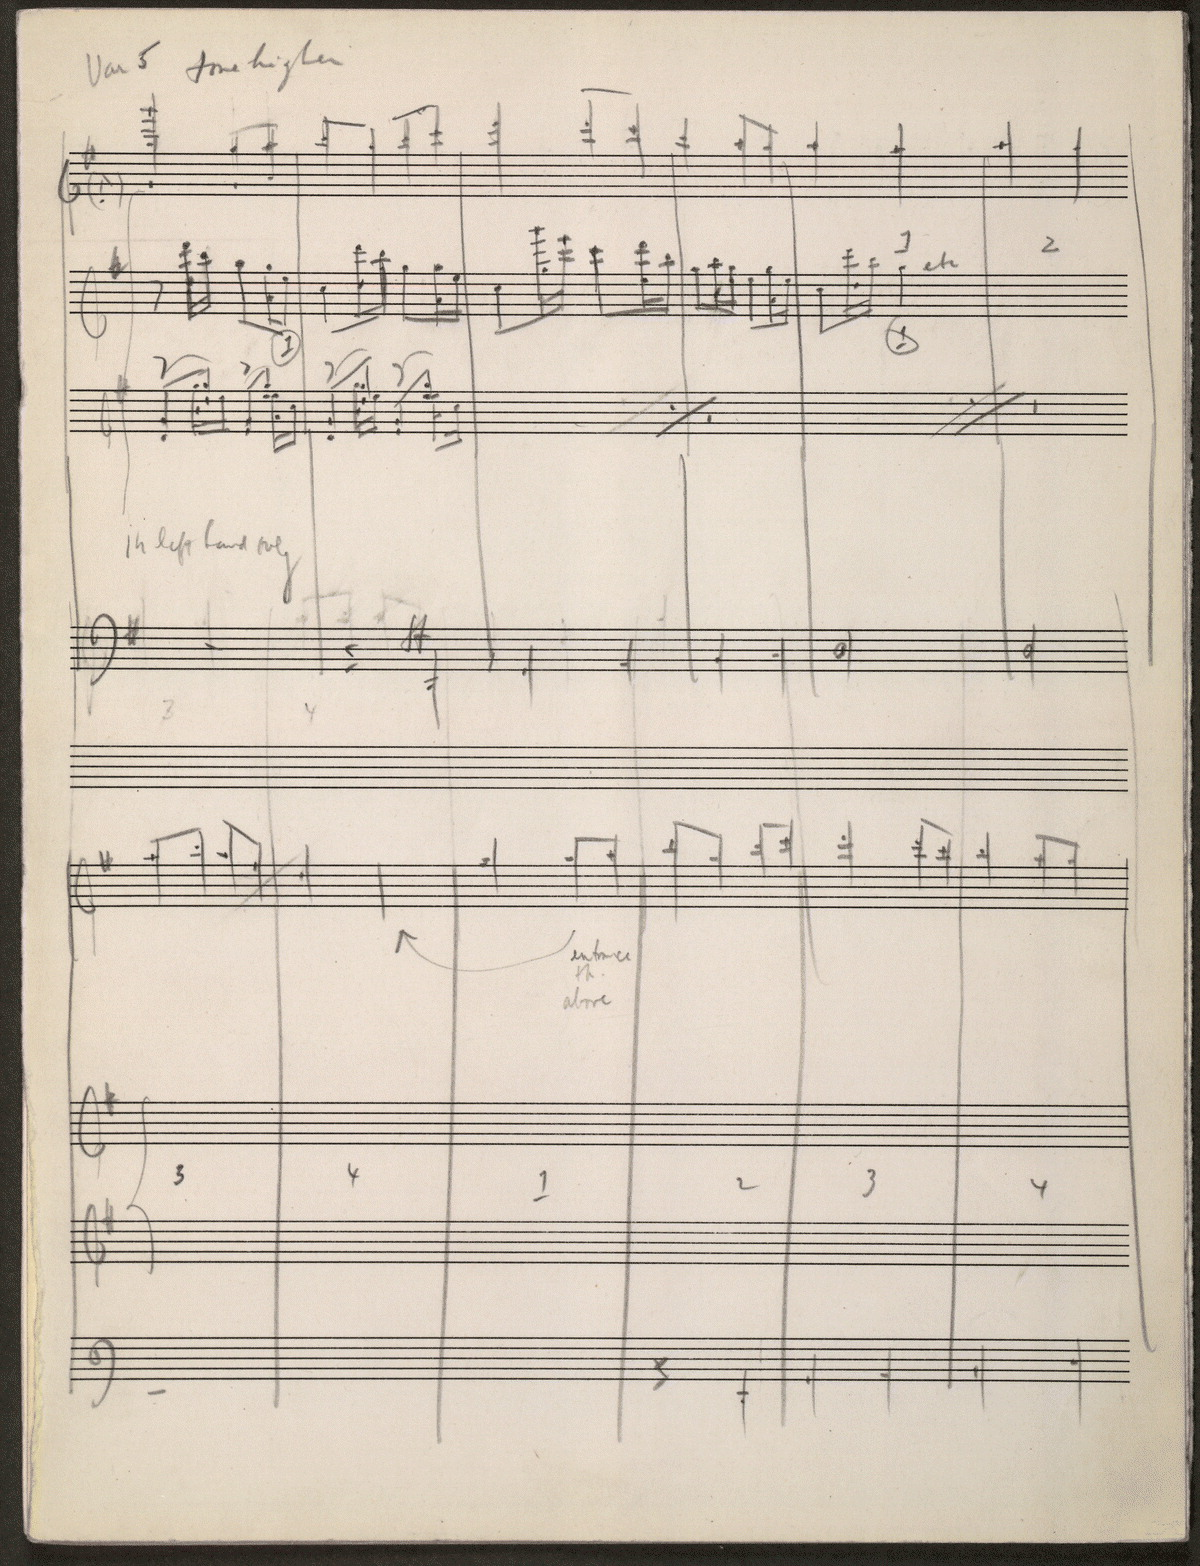 appalachian spring Buy appalachian spring by copland at jwpeppercom orchestra sheet music appalachian spring was composed in 1943-44 as a ballet for miss martha graham.